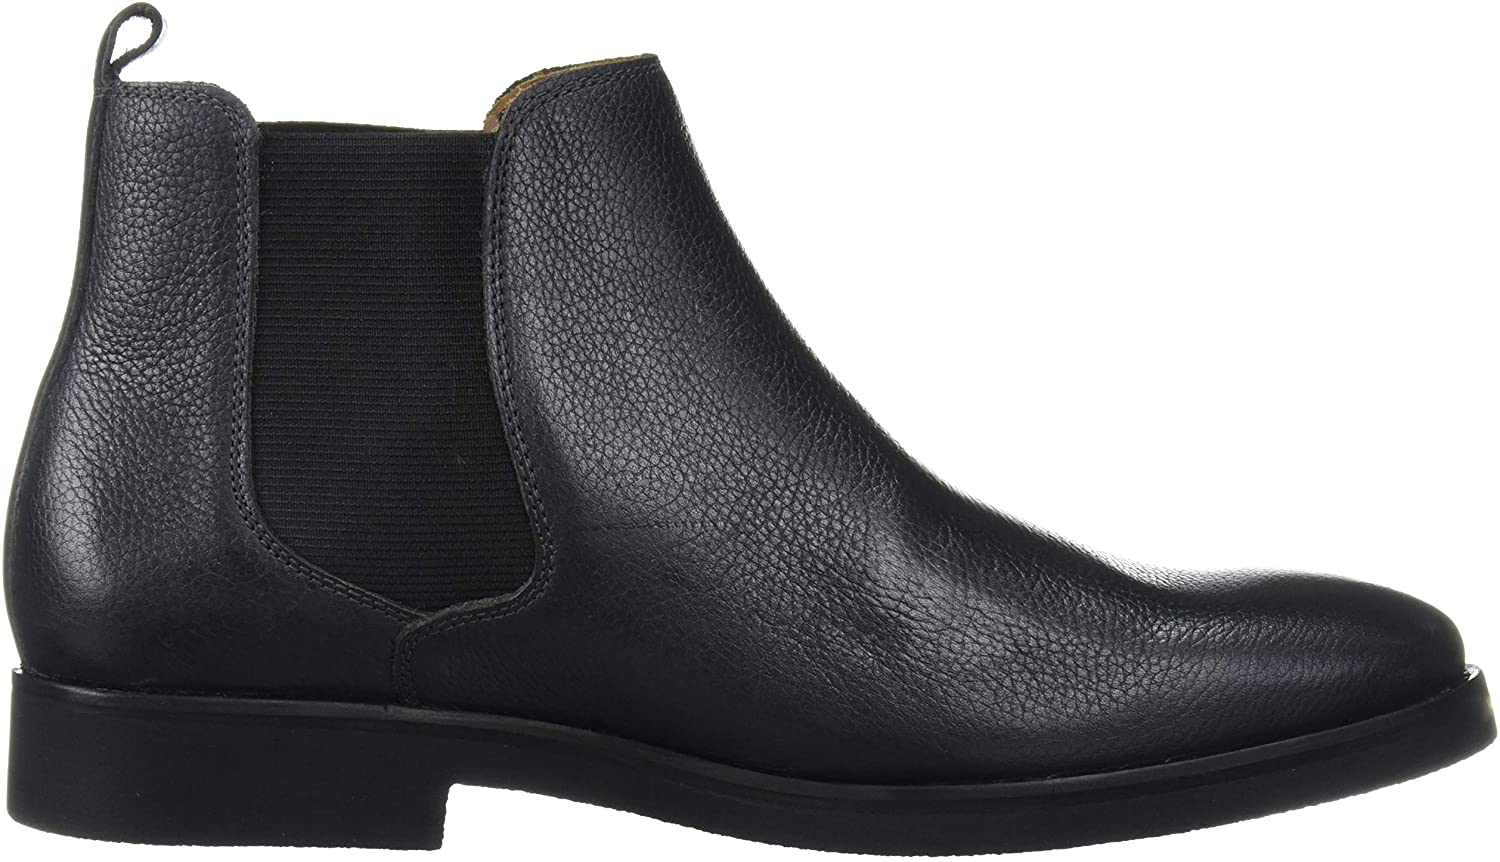 thumbnail 28 - Driver Club USA Men's Shoes Geuine Leather Leather Closed Toe Ankle Fashion